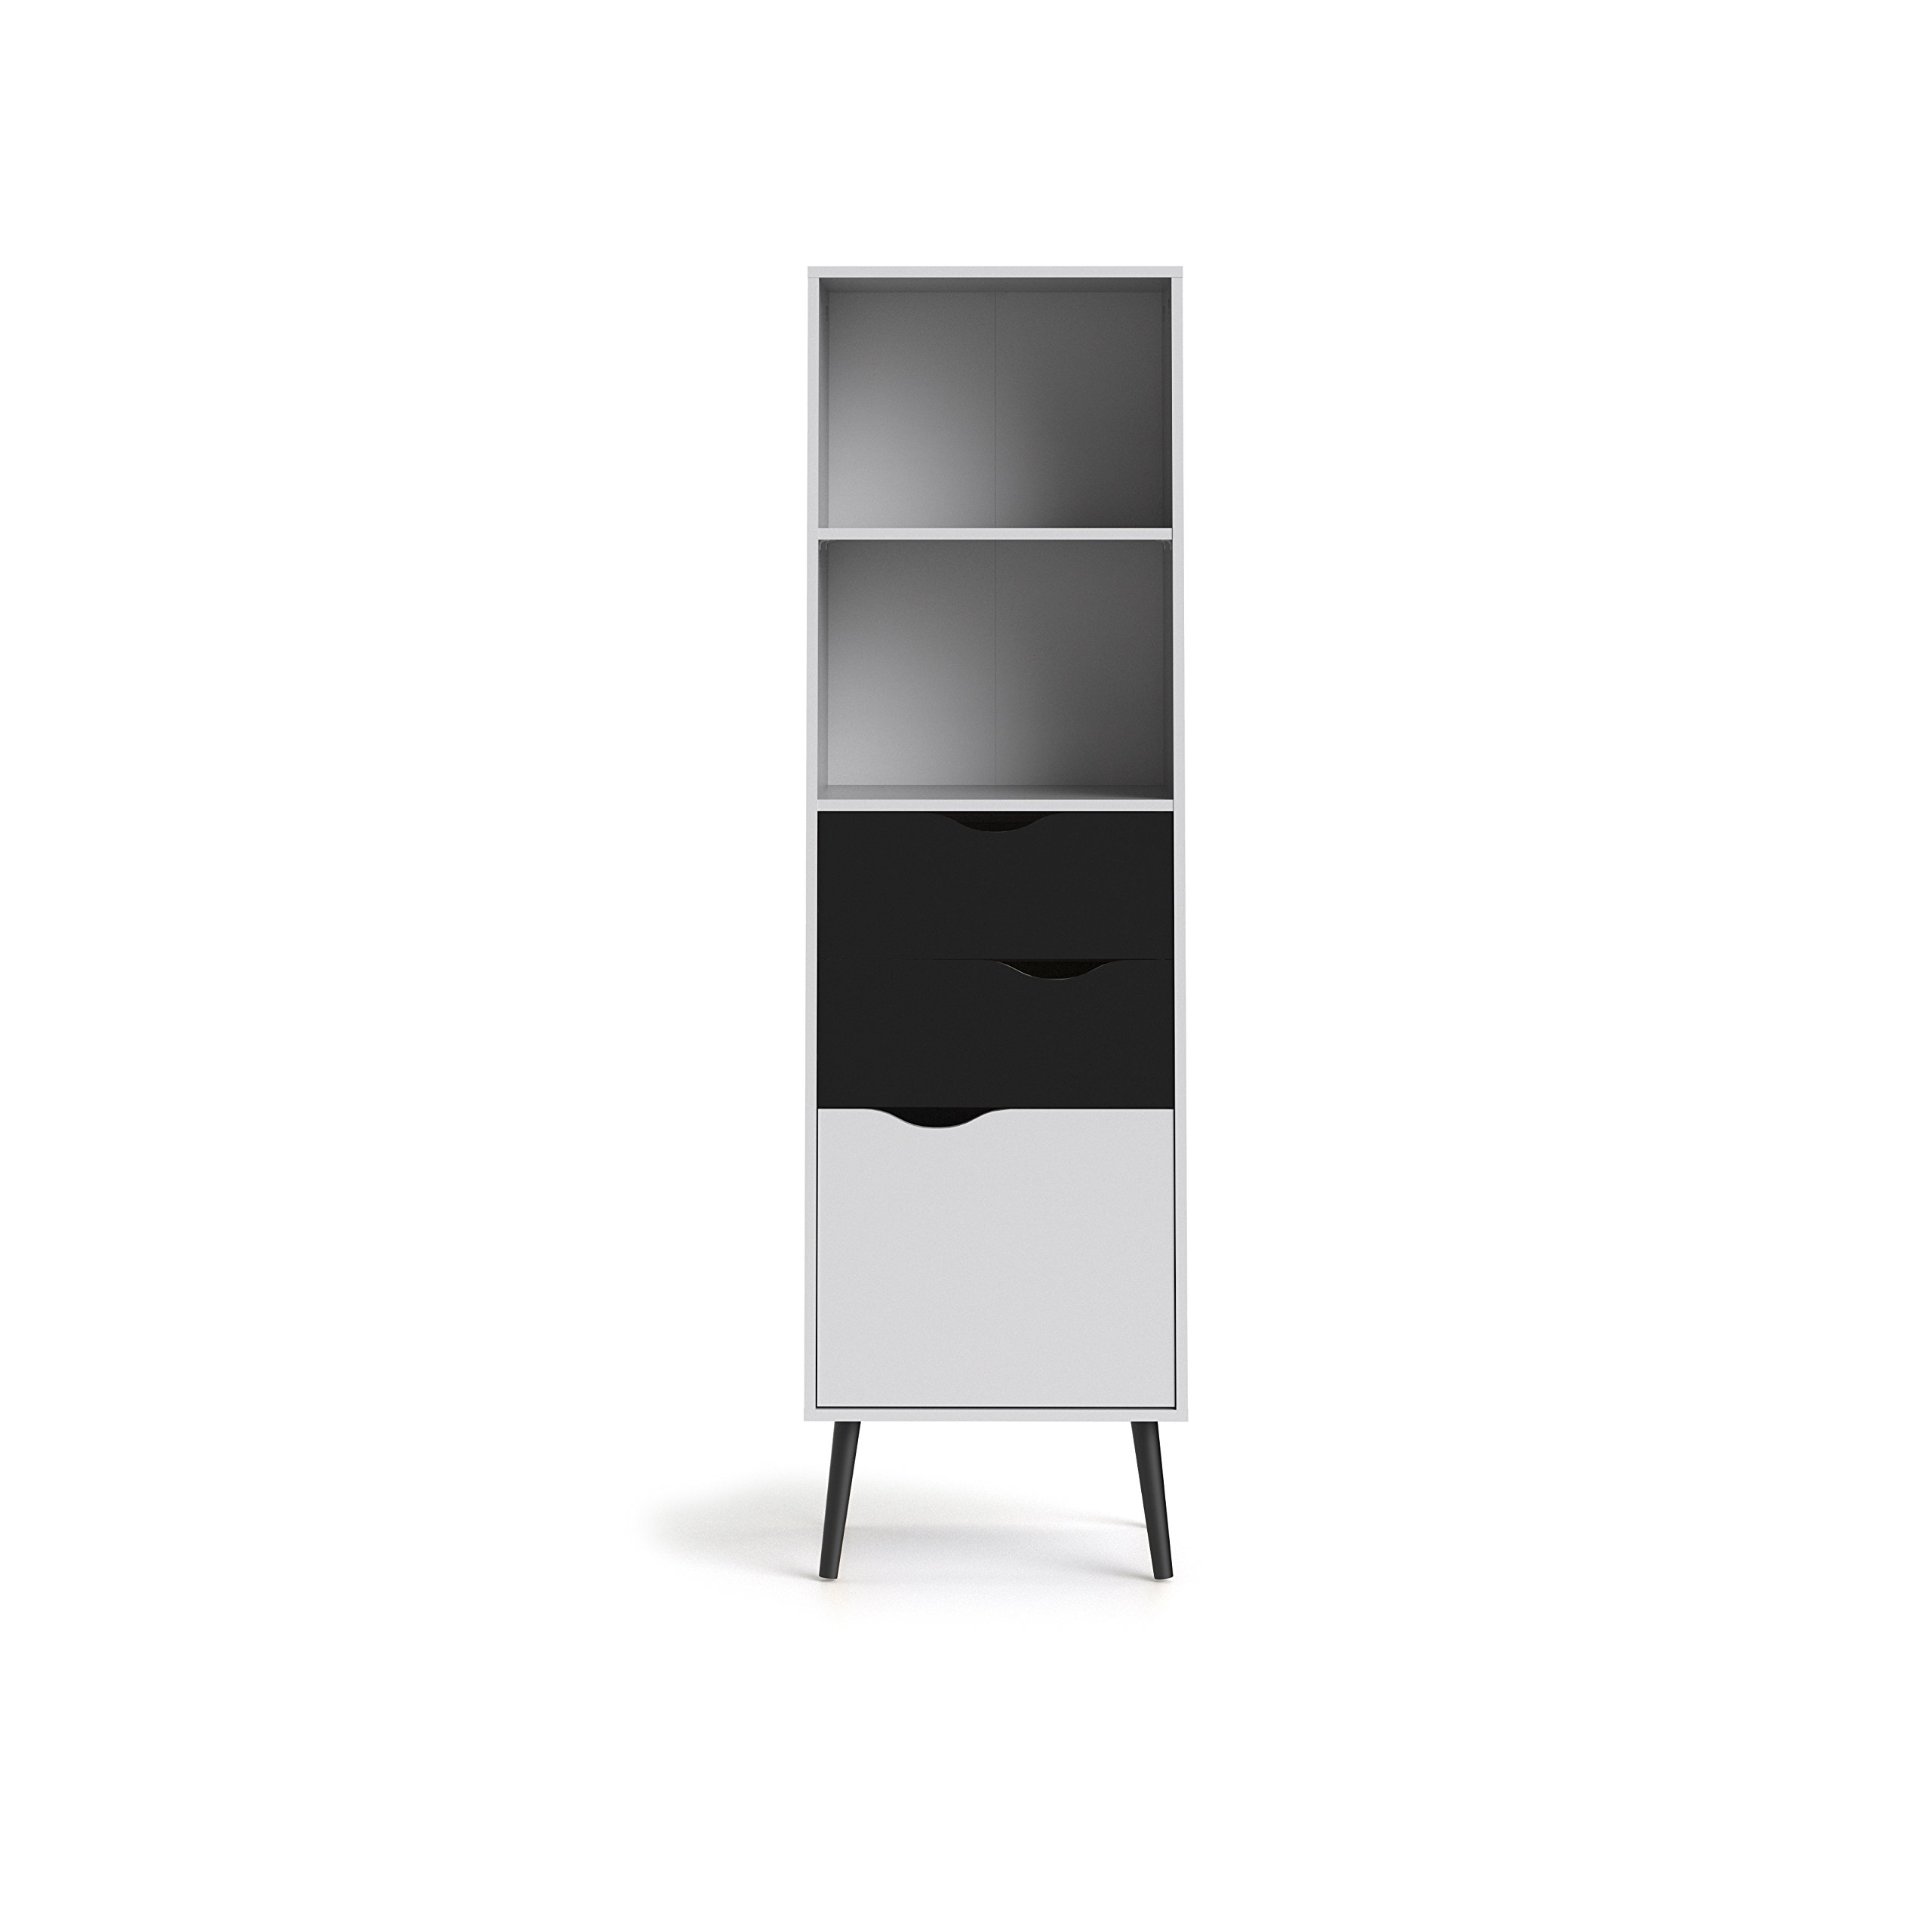 Tvilum 7538249gm Diana Bookcase with 2 Drawer and 1 Door, White/Black Matte